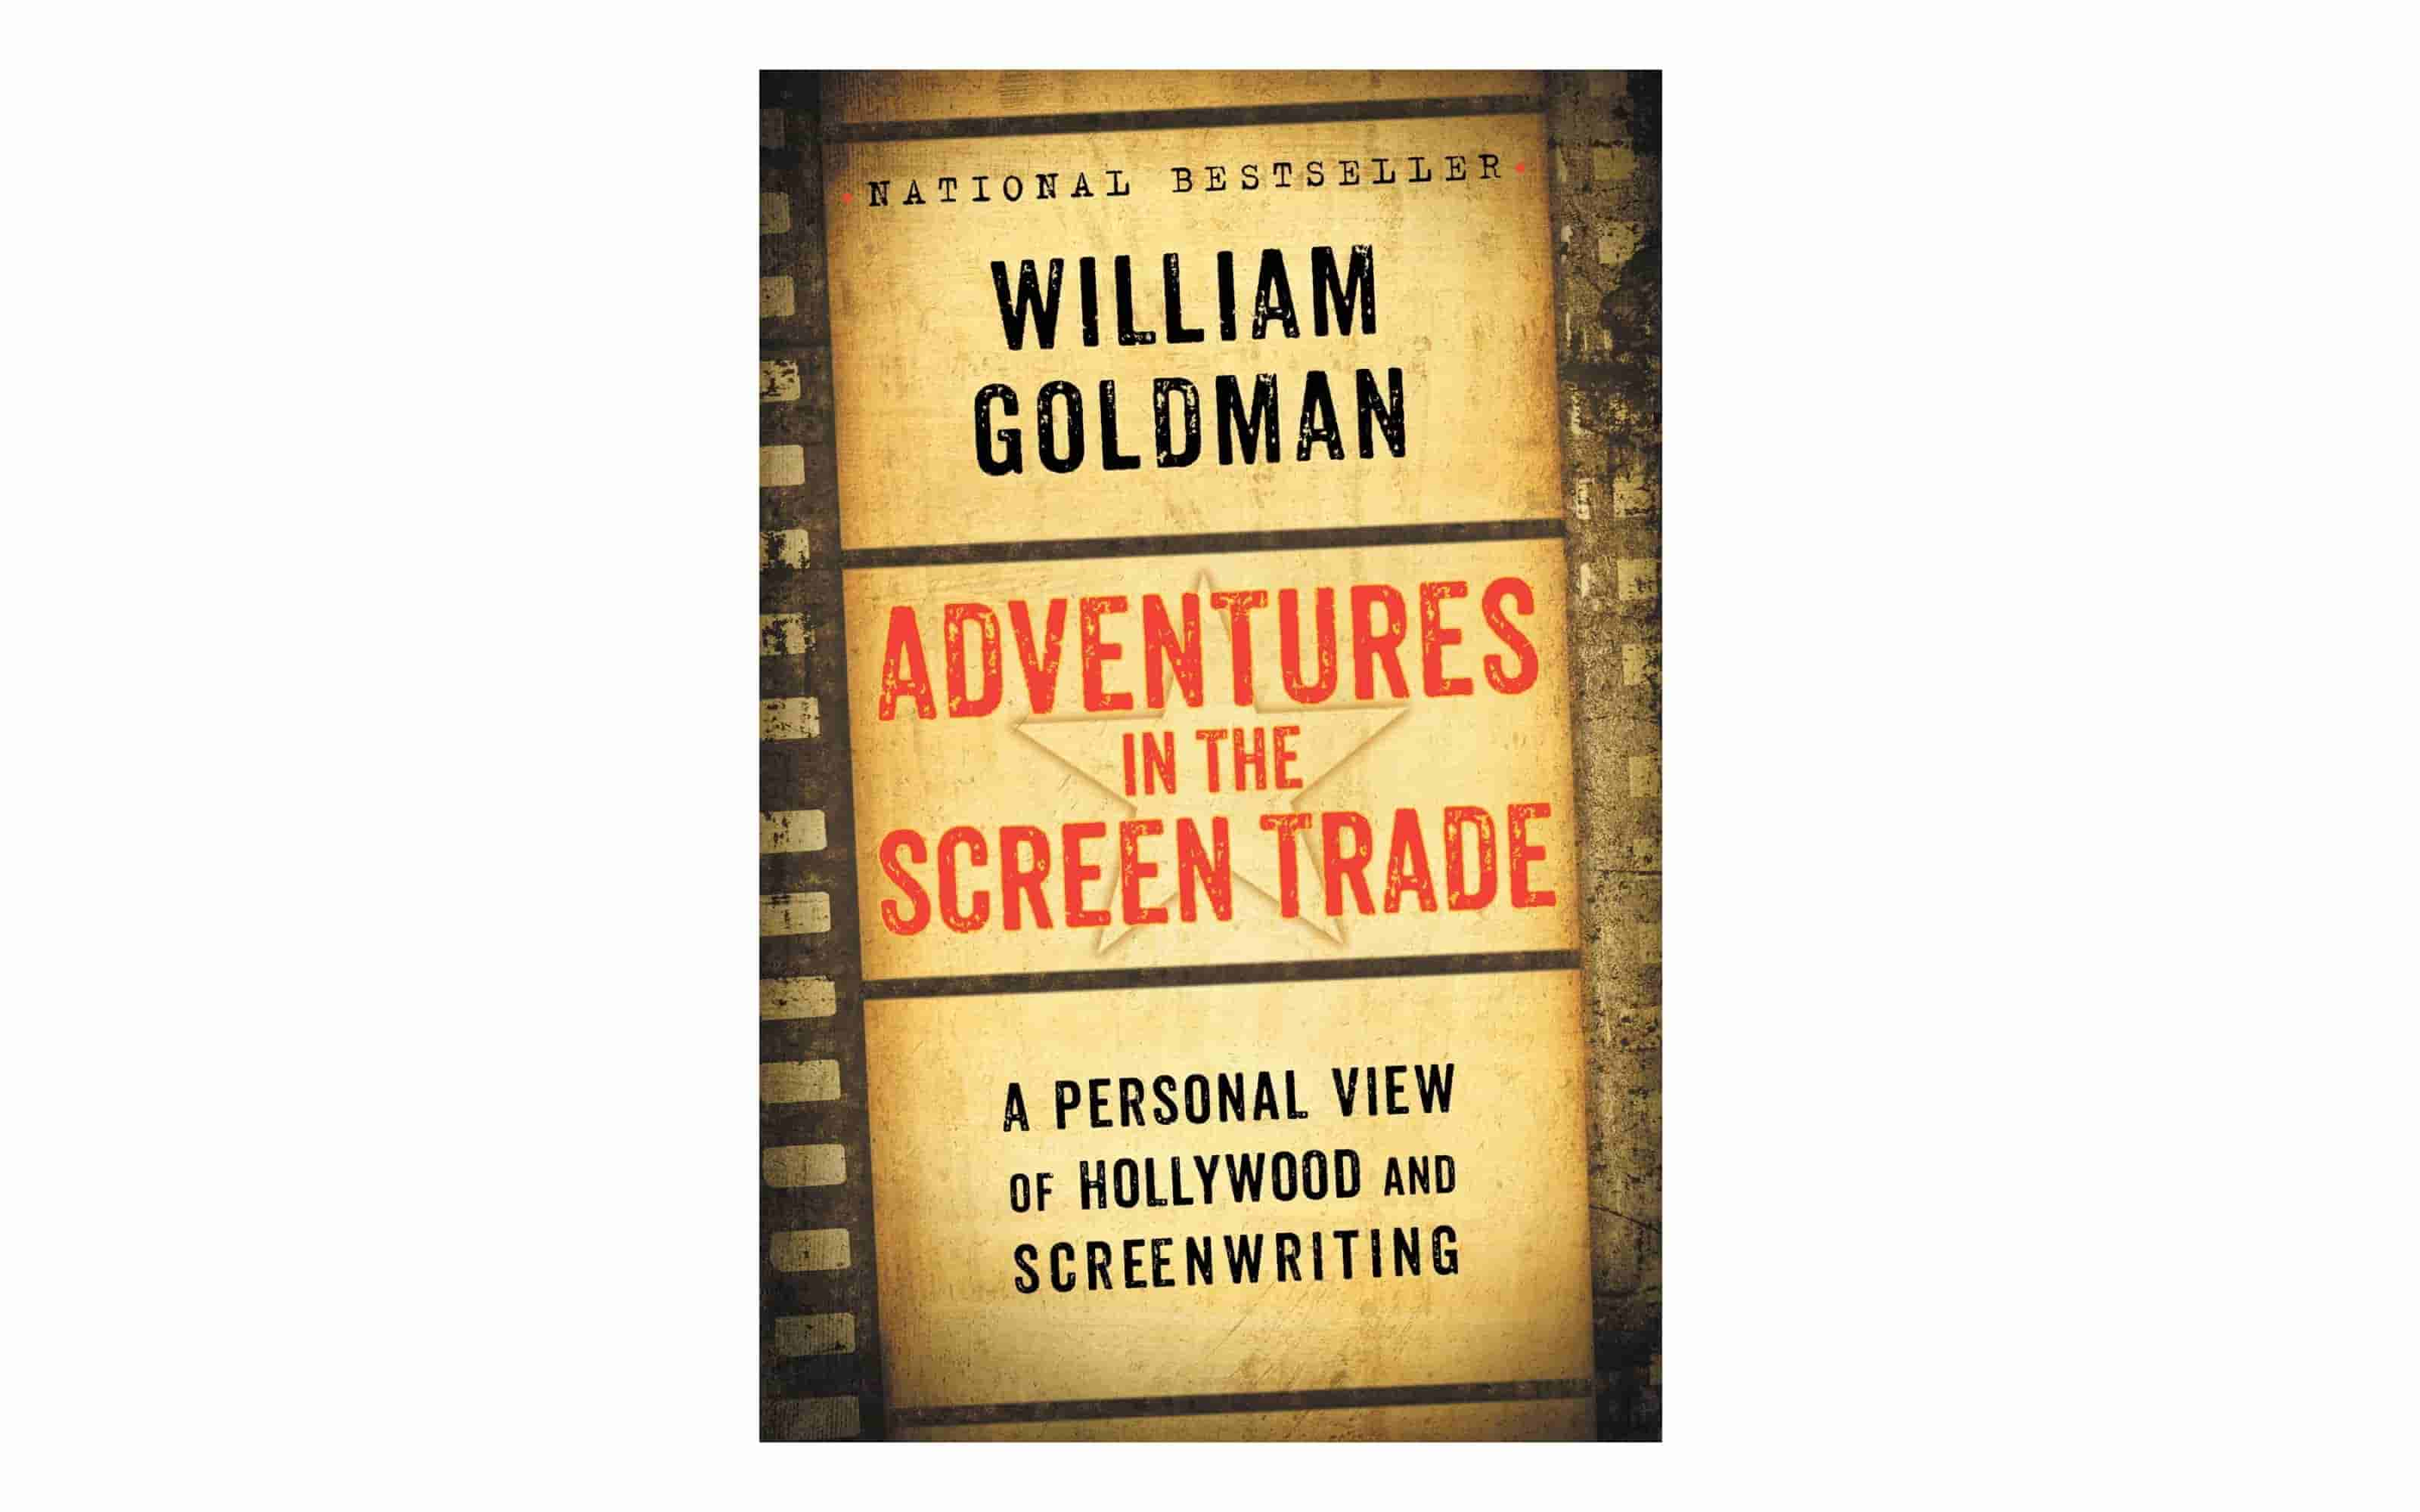 Best Screenwriting Books - Adventures in the Screen Trade